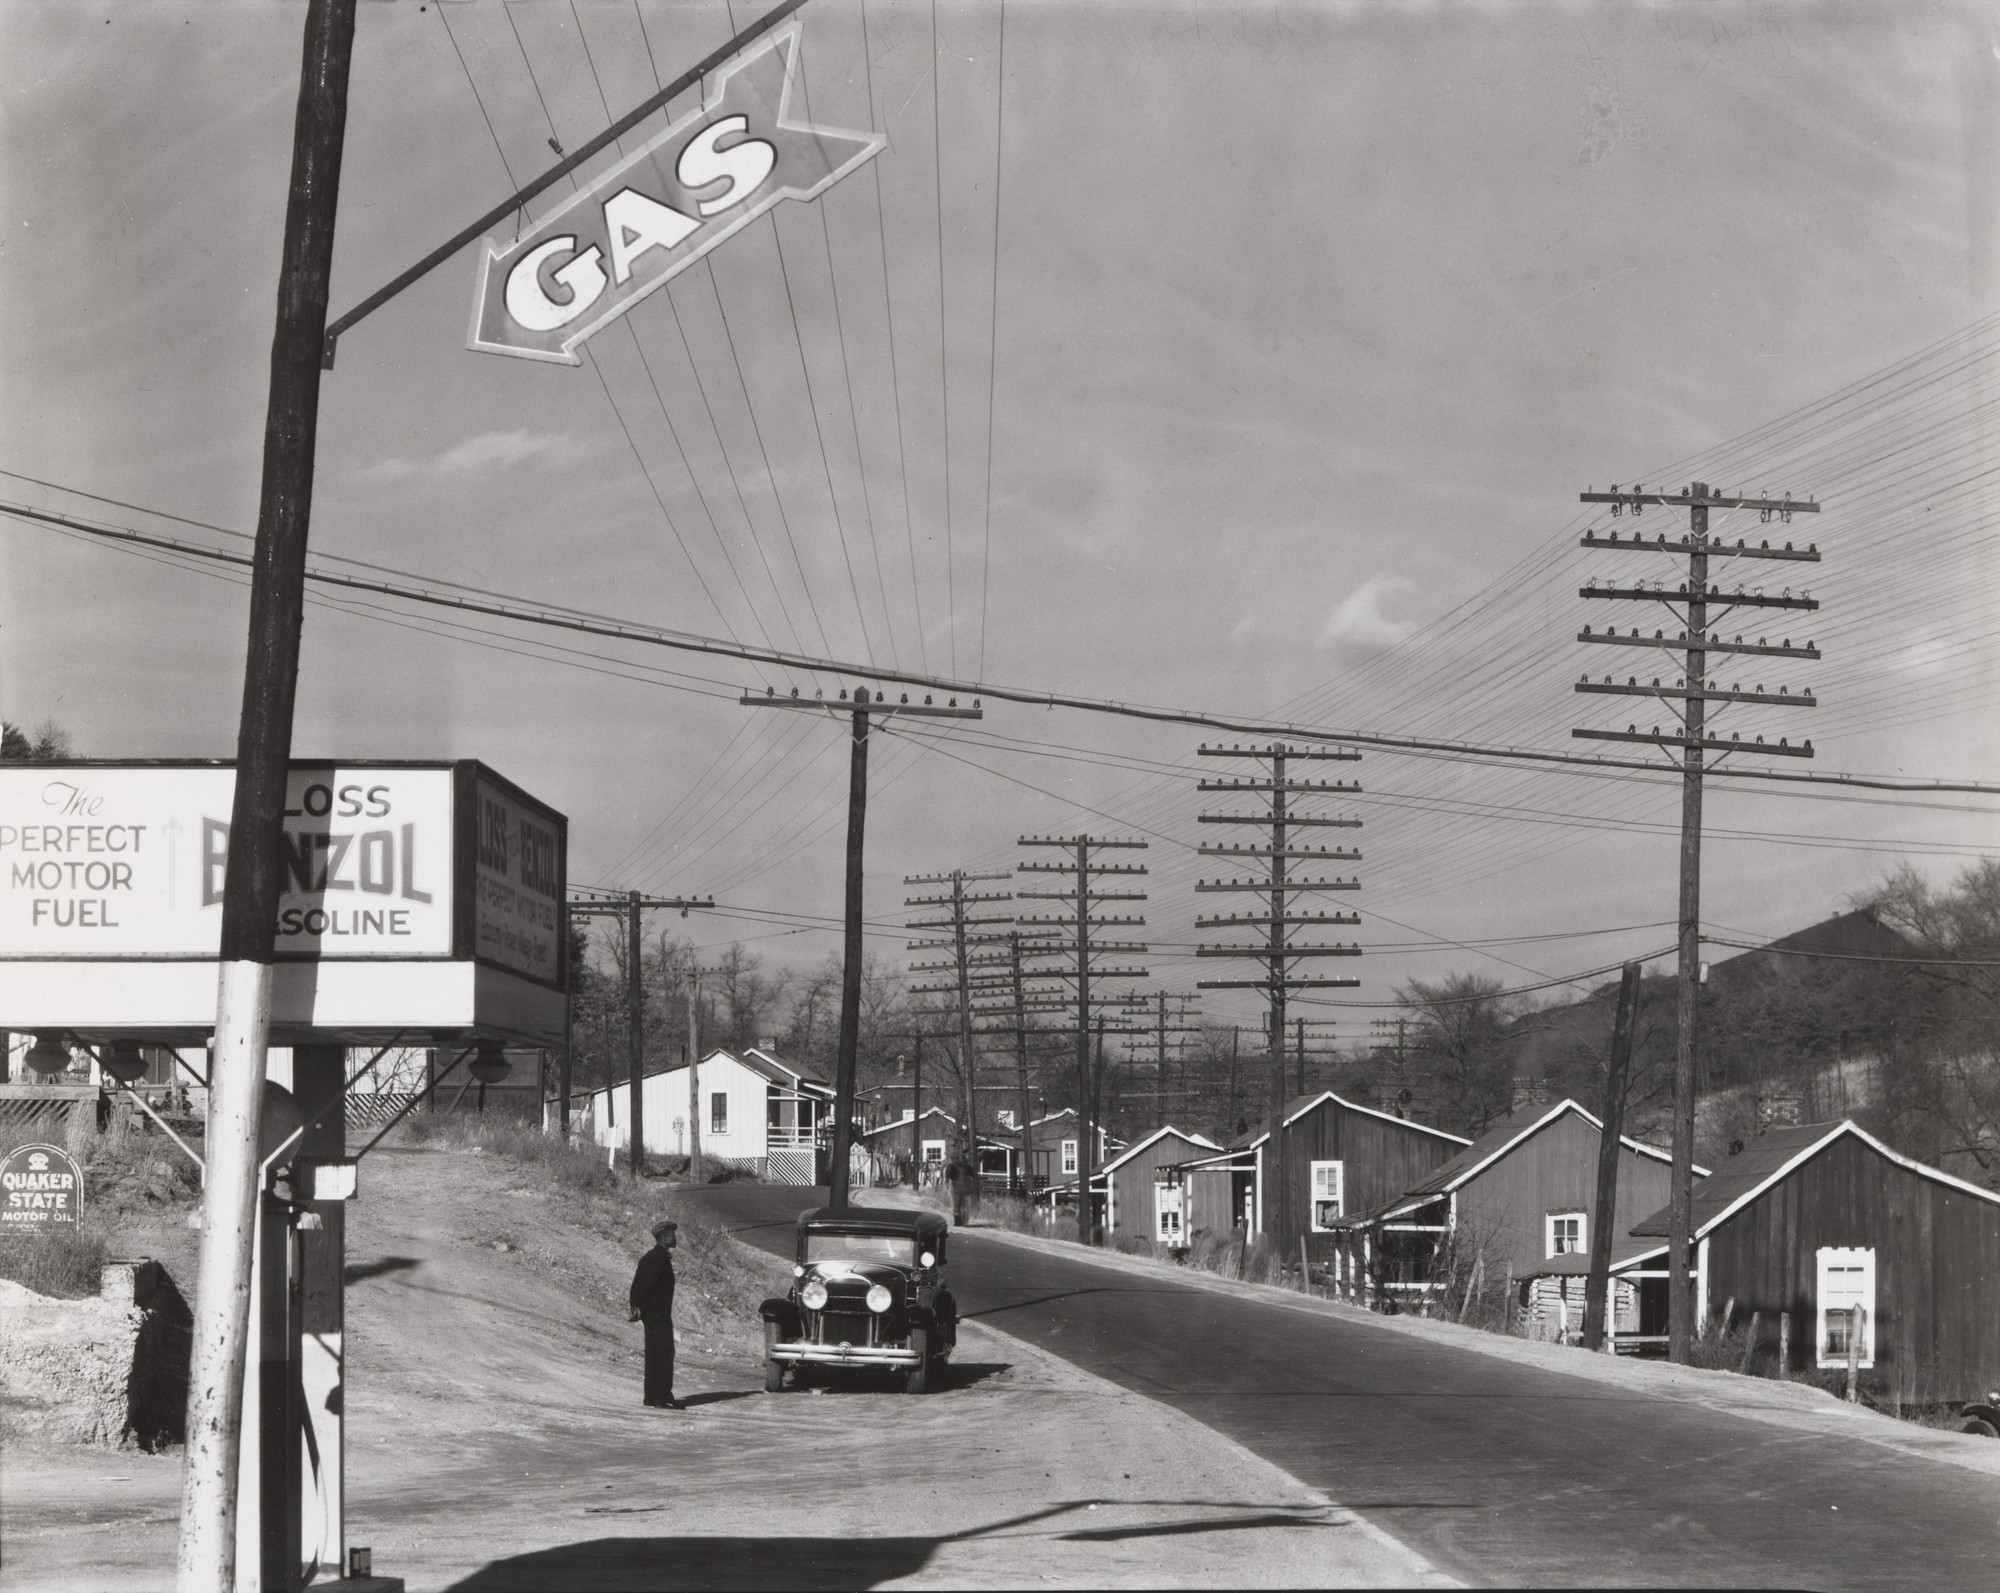 Walker Evans. Roadside View, Alabama Coal Area Company Town. 1936